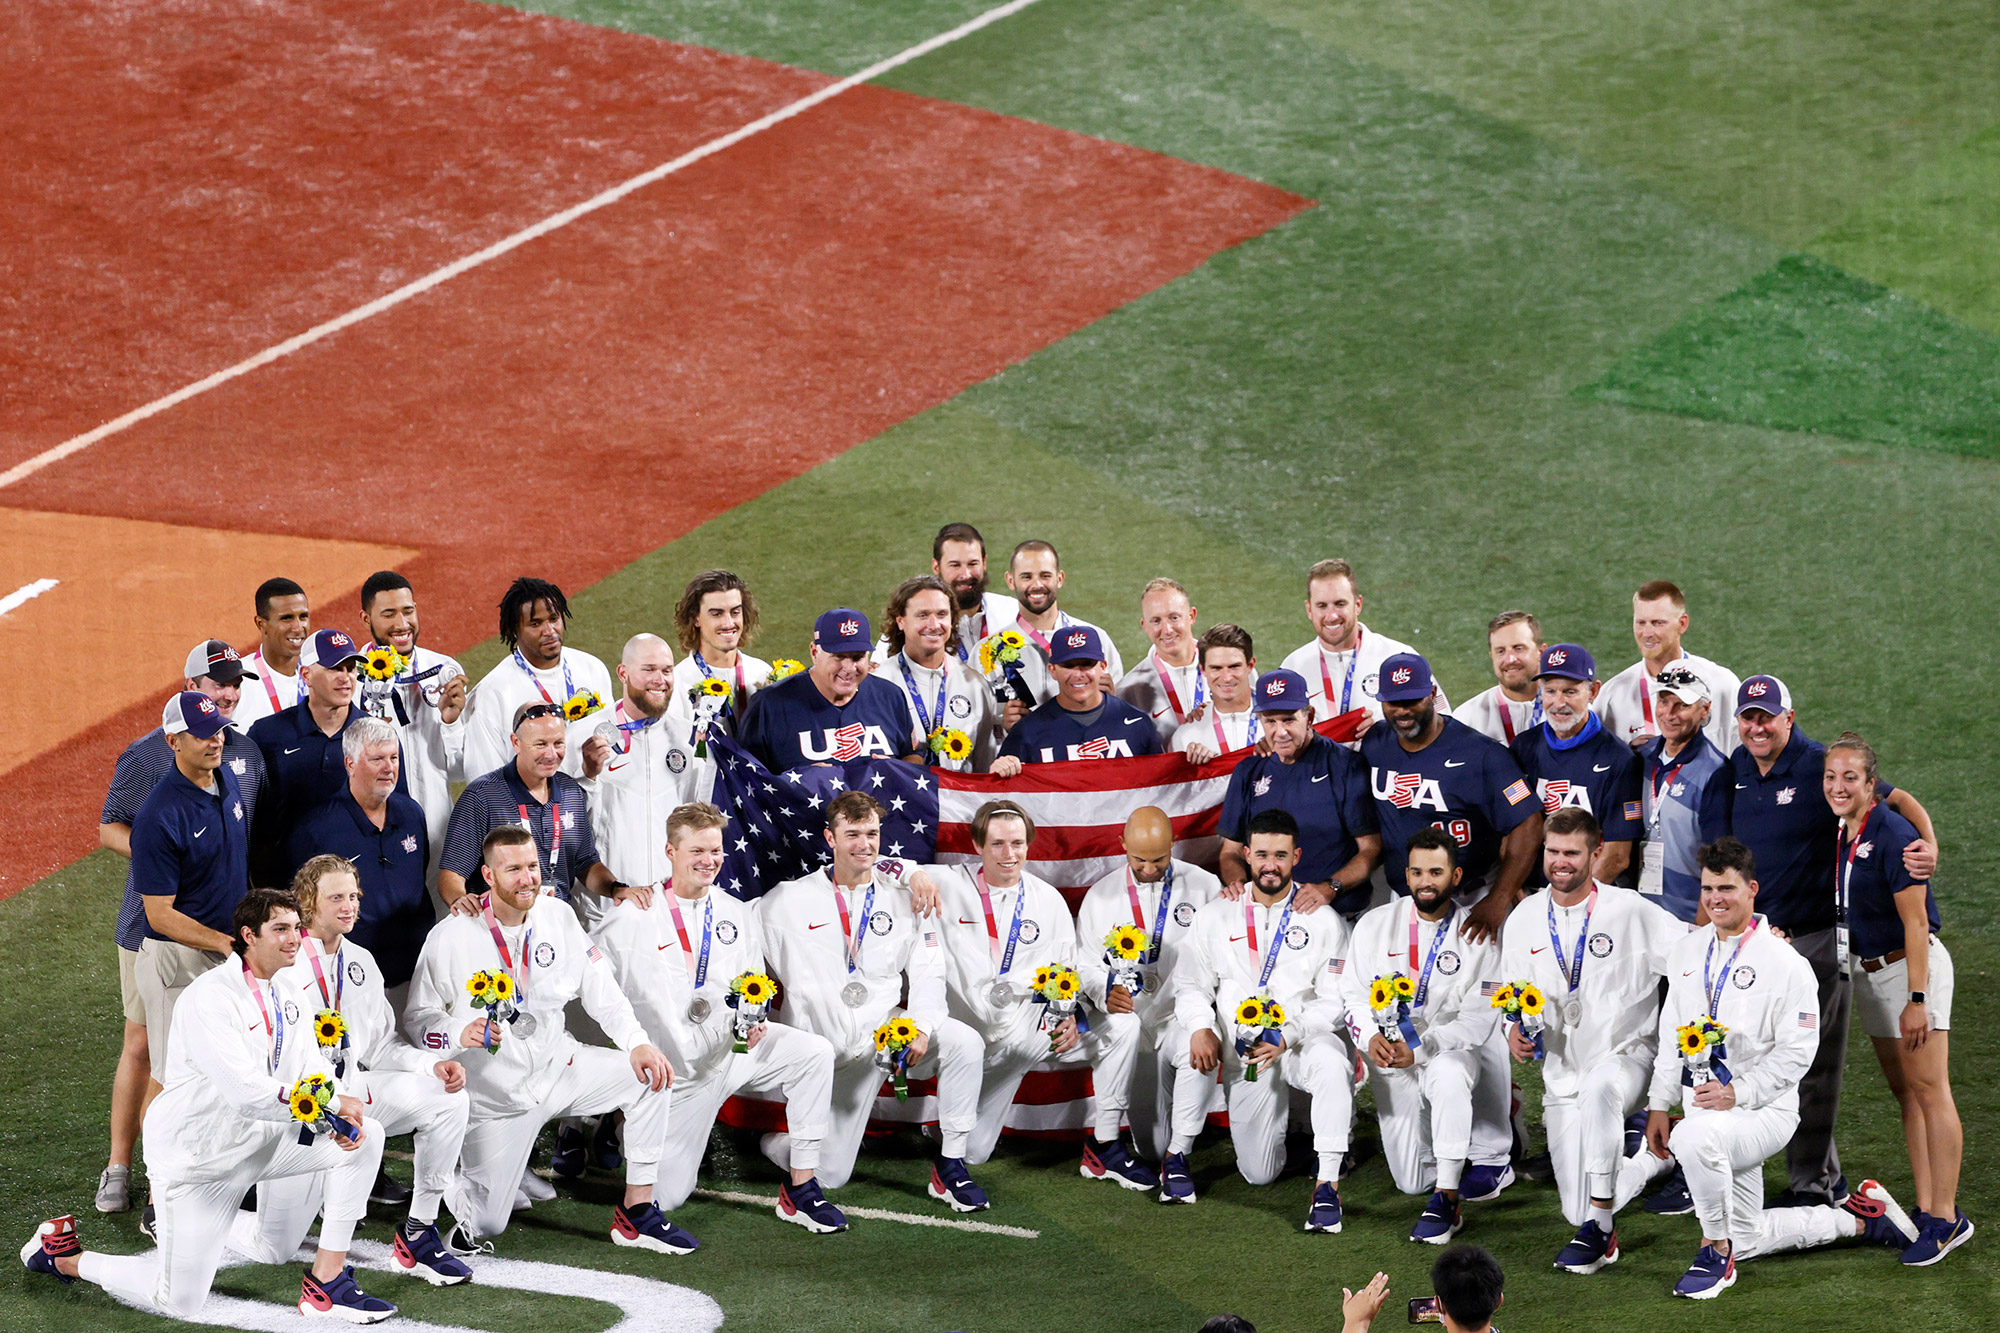 Silver medalists Team United States pose for photographs following the gold medal game between Team United States and Team Japan on day fifteen of the Tokyo 2020 Olympic Games at Yokohama Baseball Stadium on August 07, 2021 in Yokohama, Kanagawa, Japan